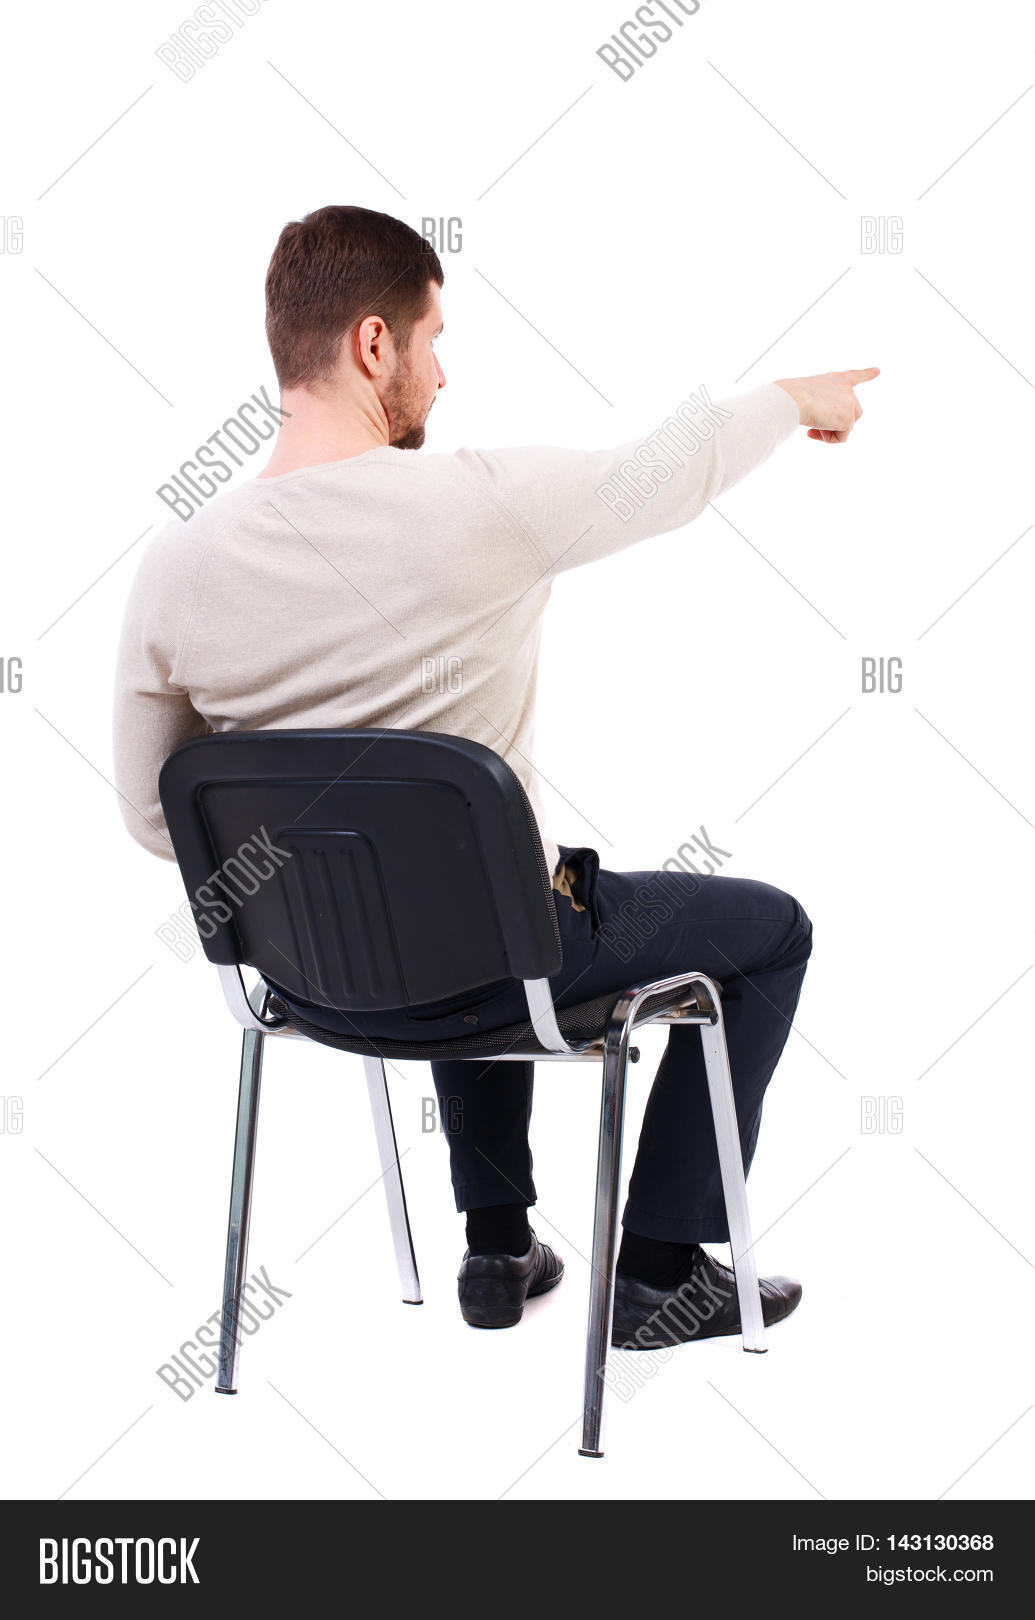 Man sitting in chair side - Back View Of Young Business Man Sitting On Chair And Pointing Rear View People Collection